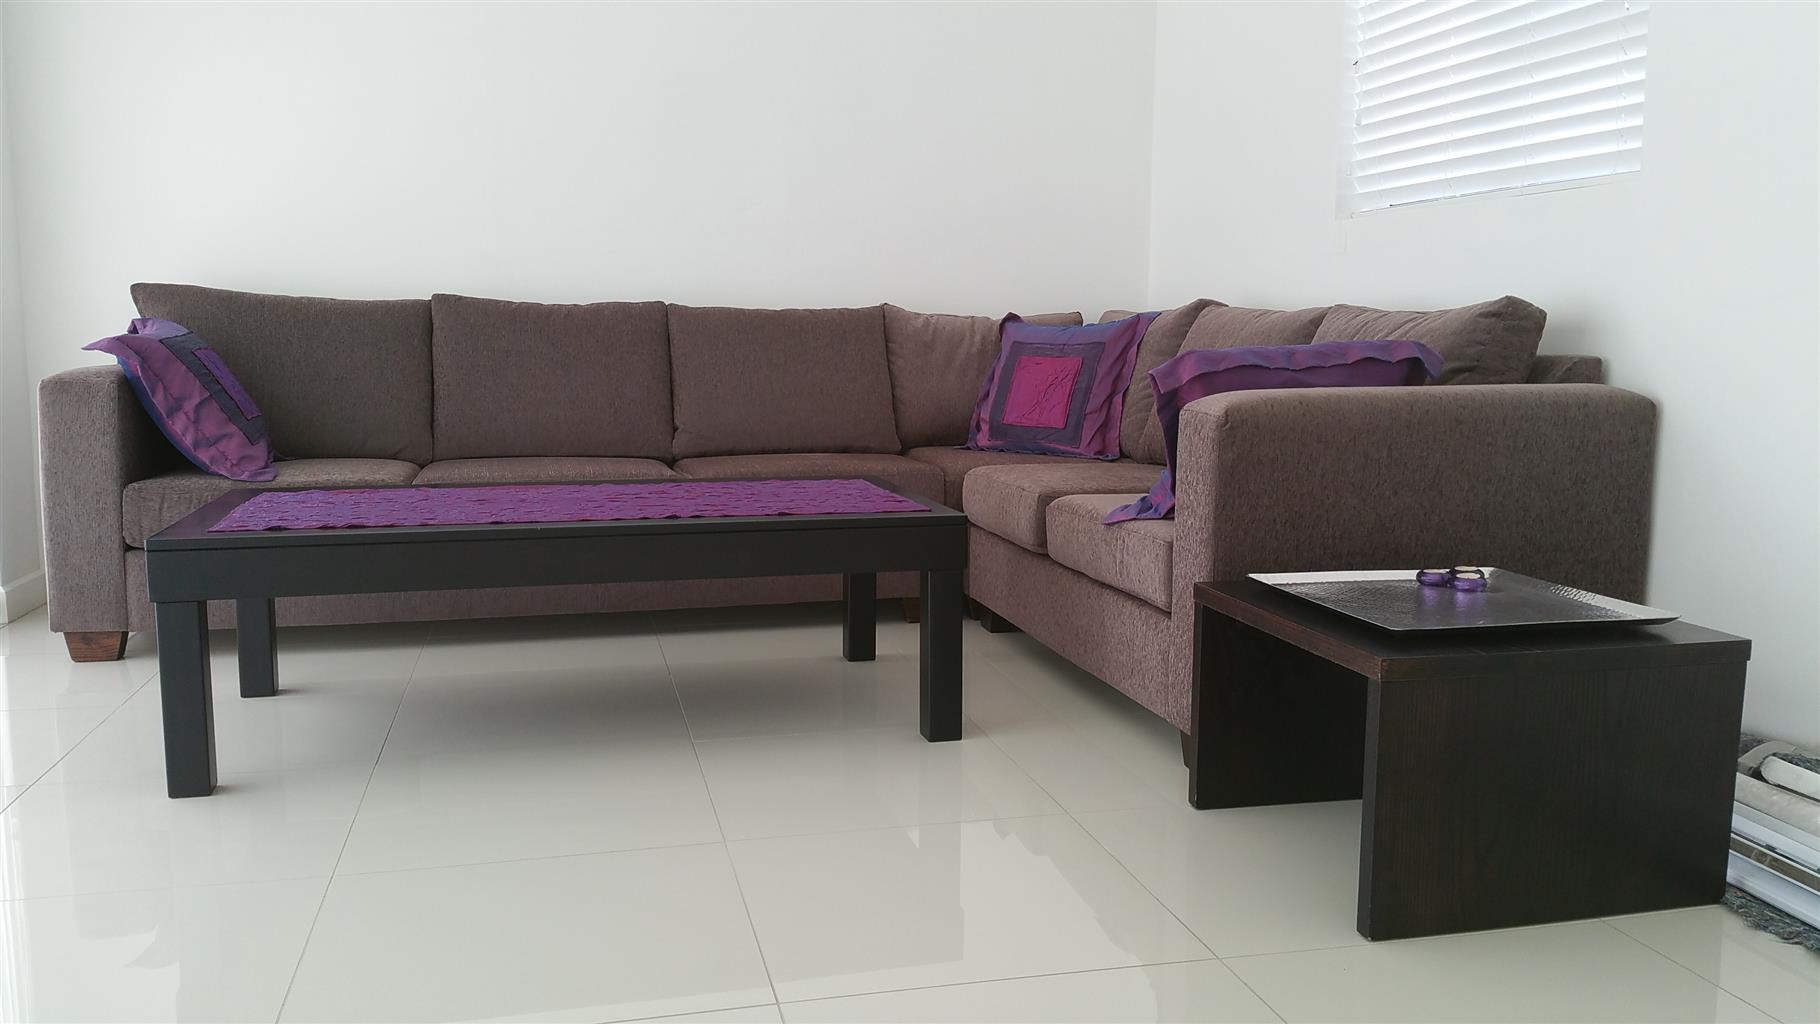 L shaped couches for sale gumtree durbanshowroom open for Couches and sofas for sale in durban